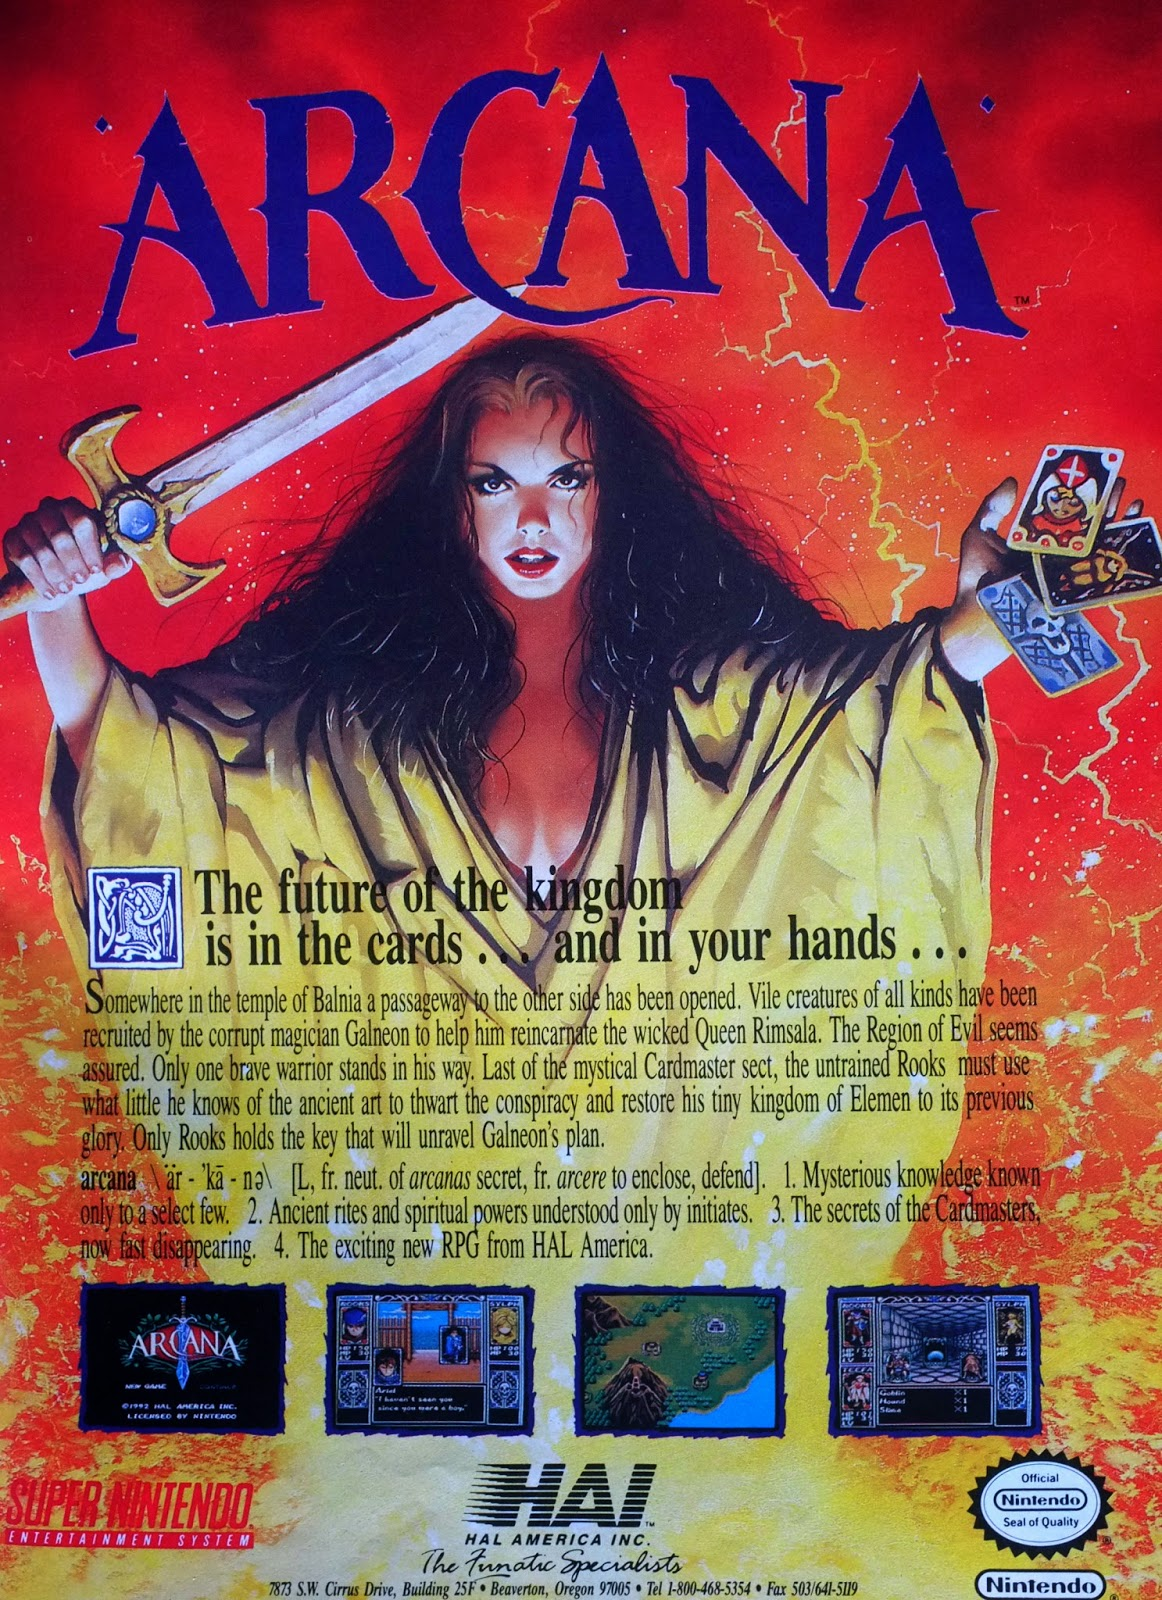 Arcana for Super NES advertisement